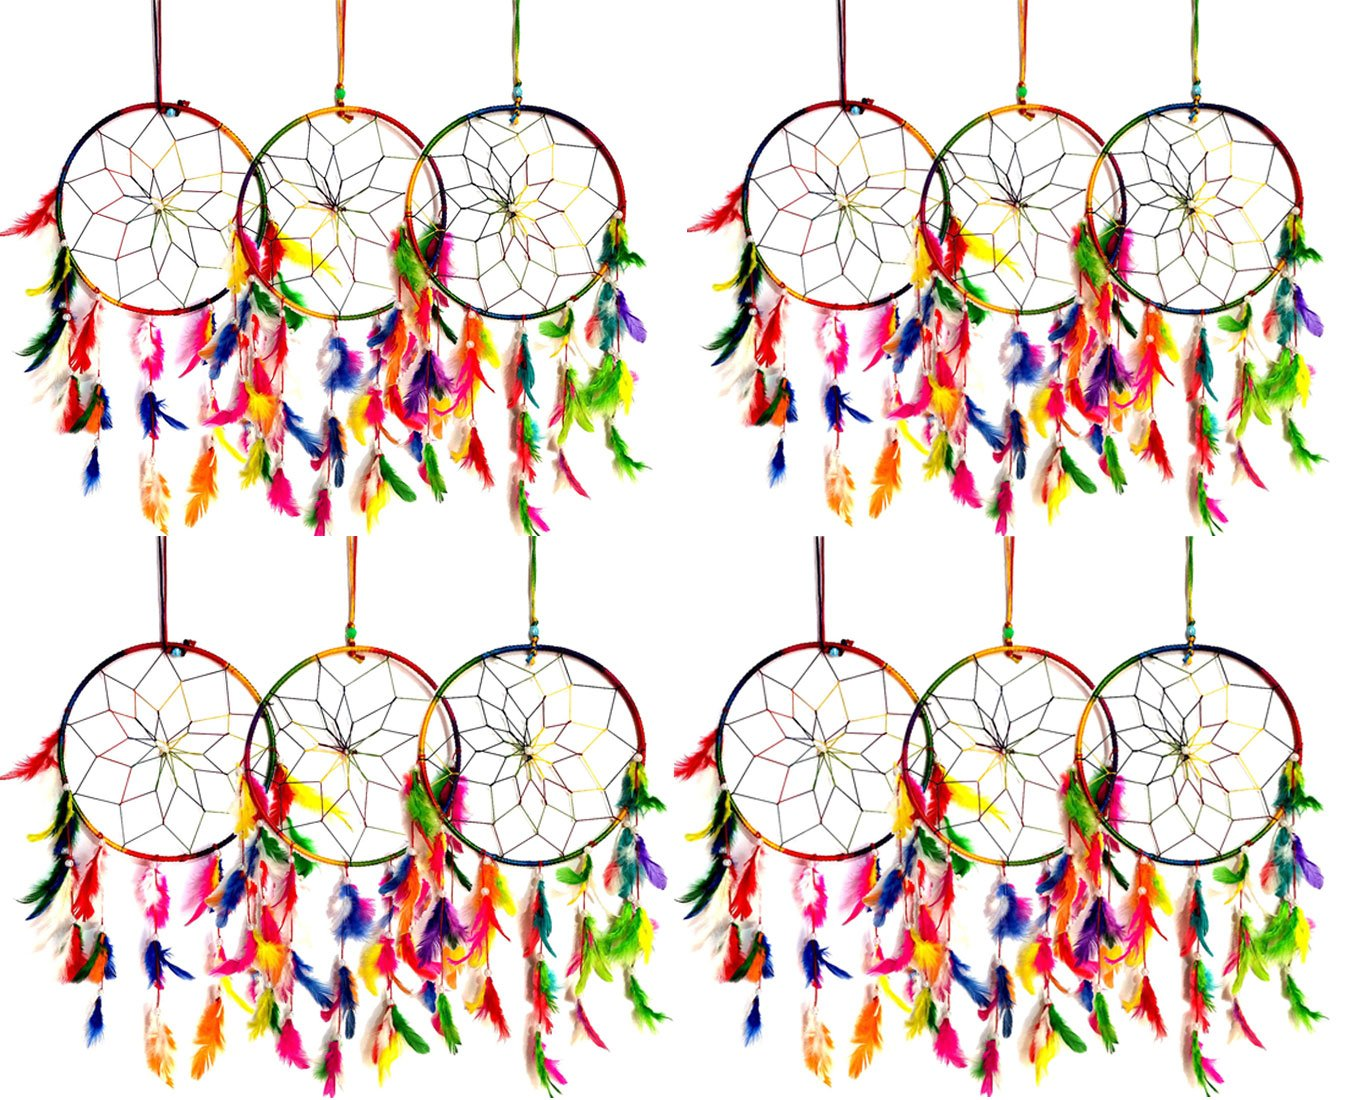 Set of 12 - Odishabazaar Multi Dream Catcher Wall Hanging - Attract Positive Dreams by Odishabazaar